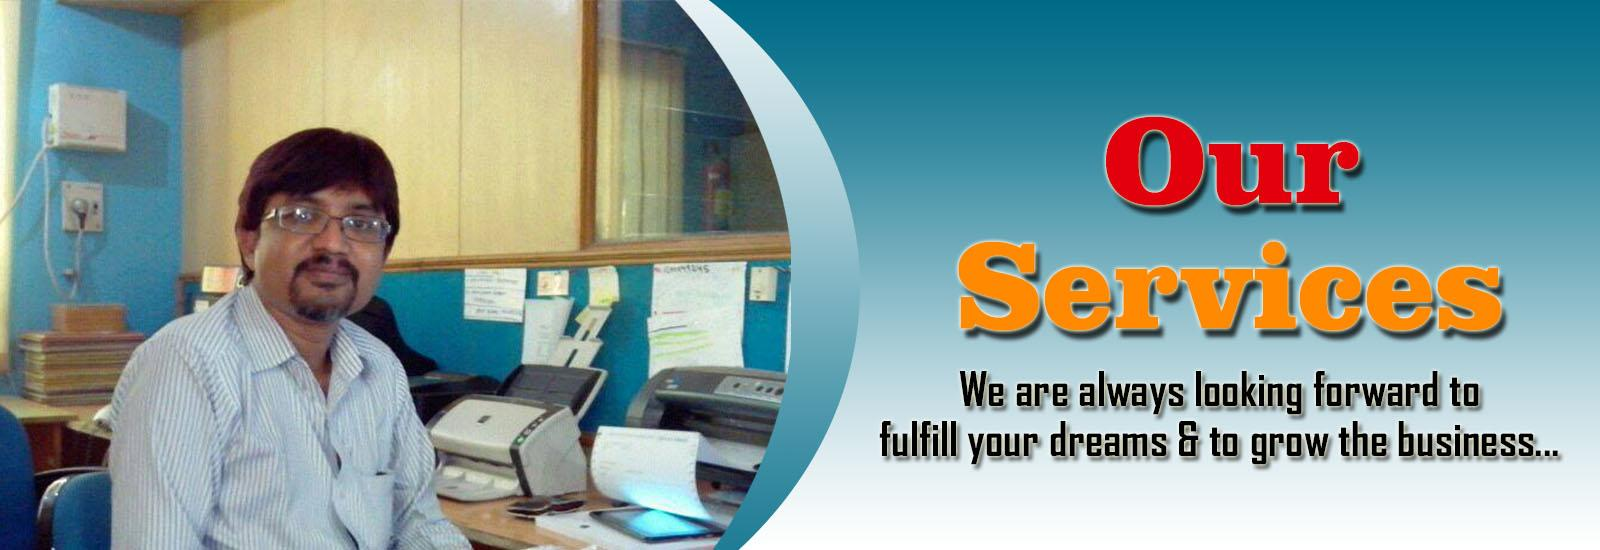 Our Services Banner